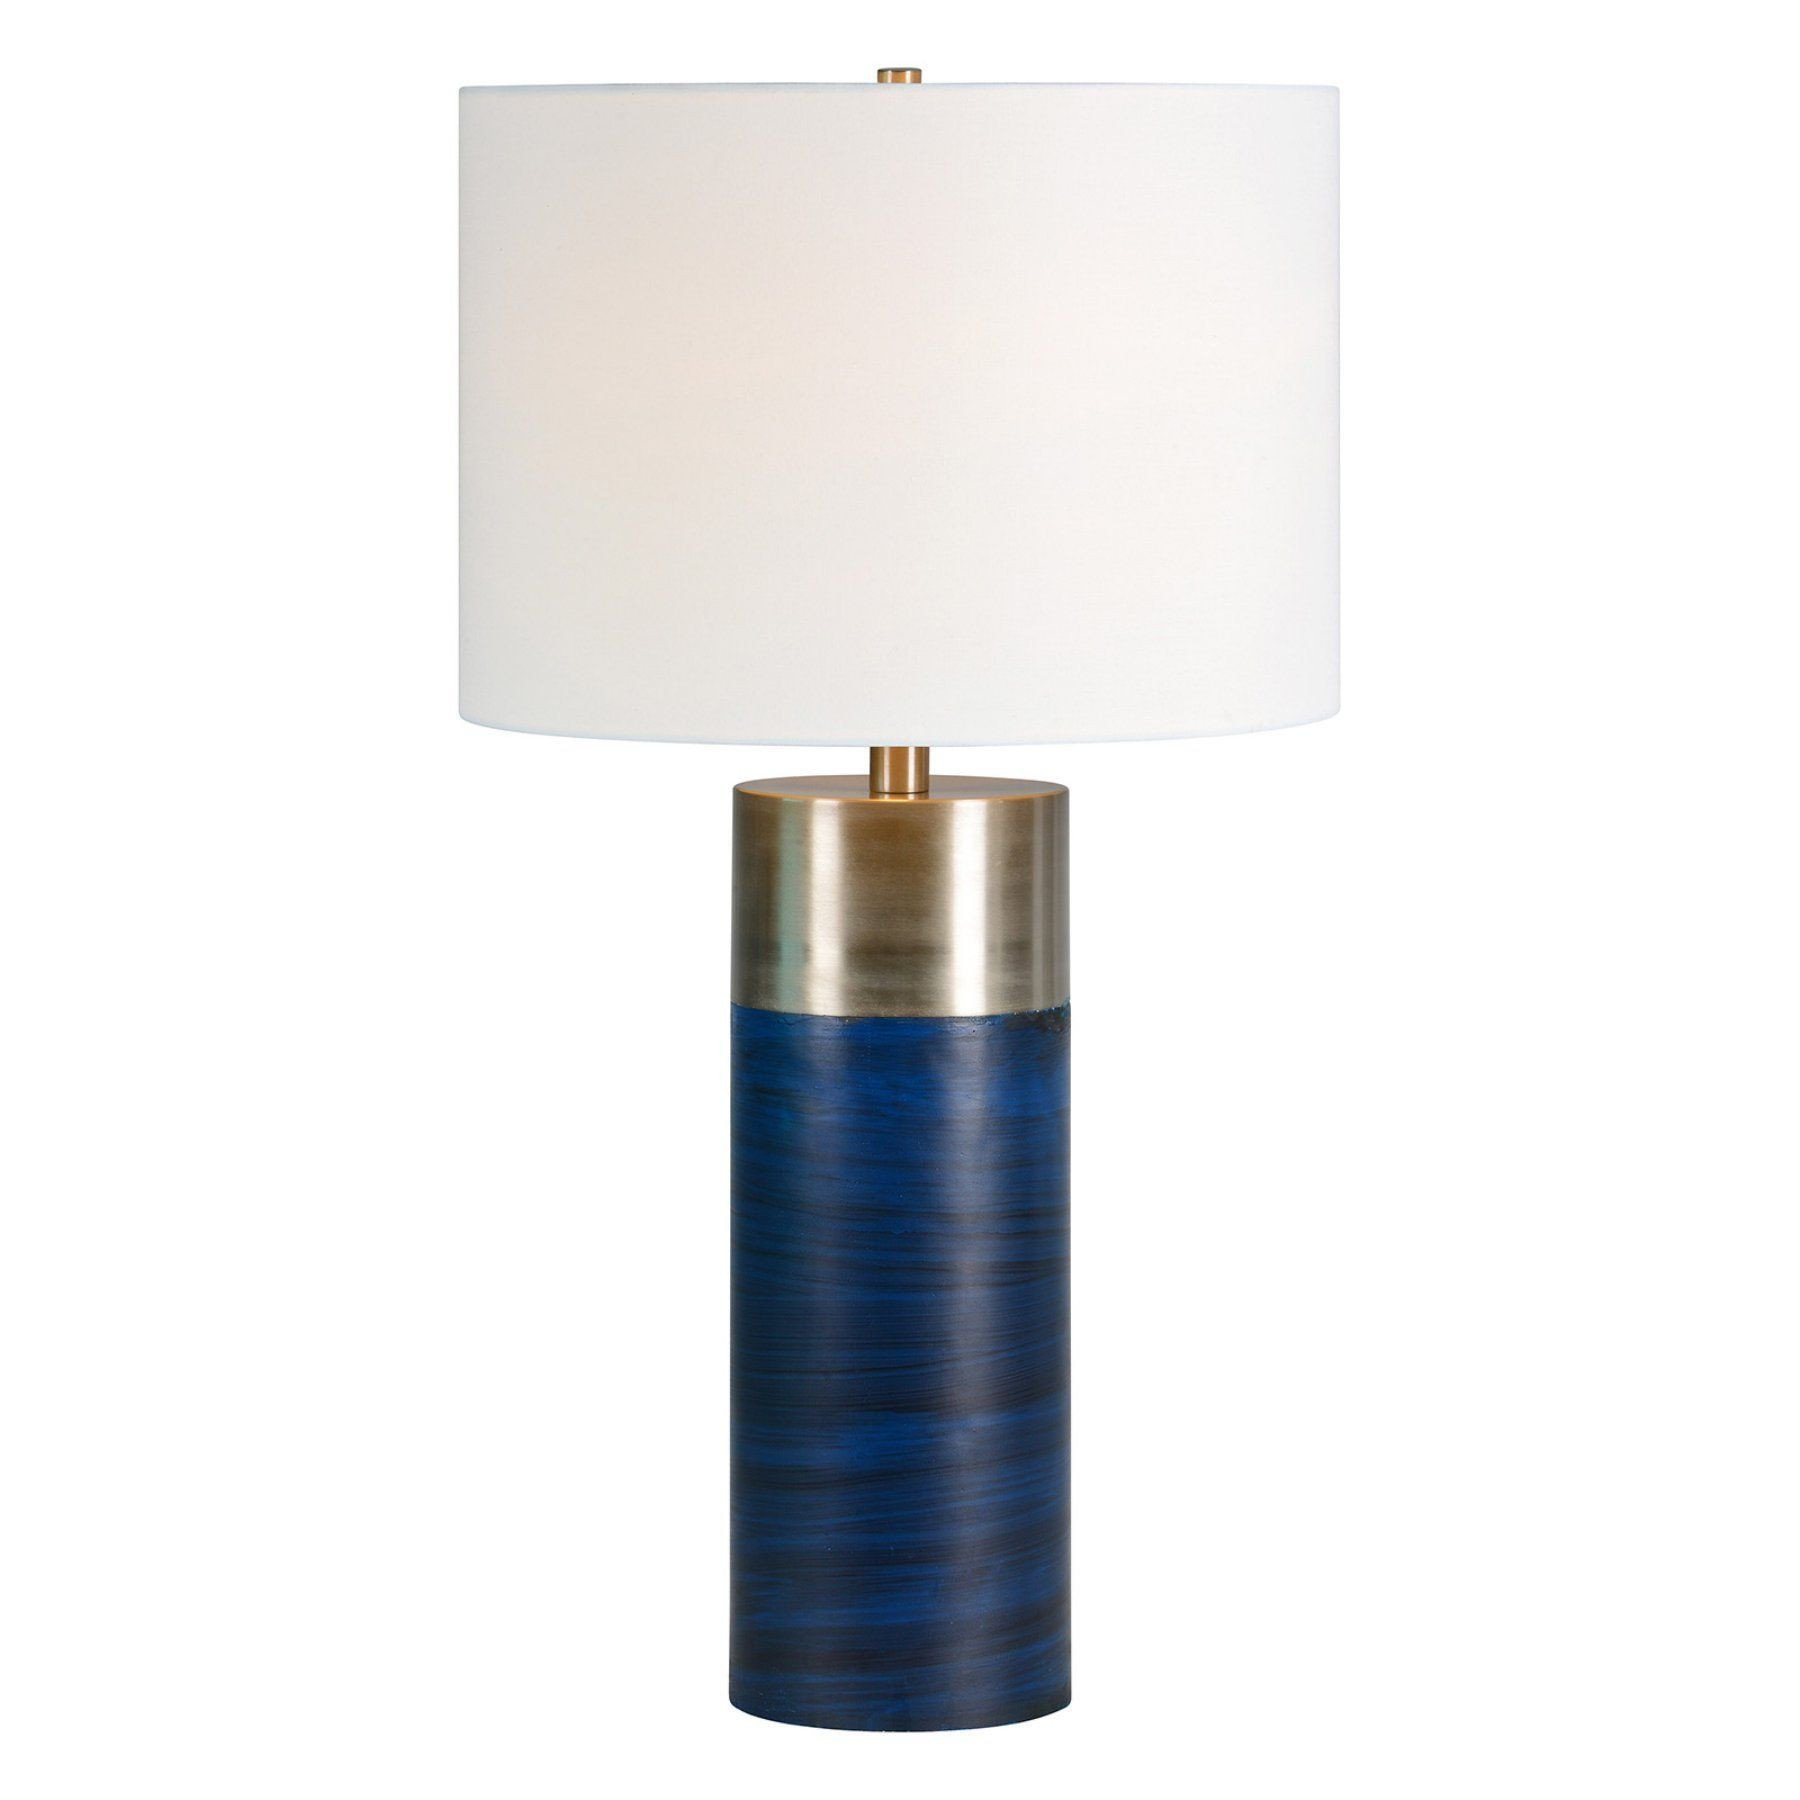 Blue Table Lamps Bedroom Inspirational Renwil Glint Table Lamp Lpt641 Products In 2019